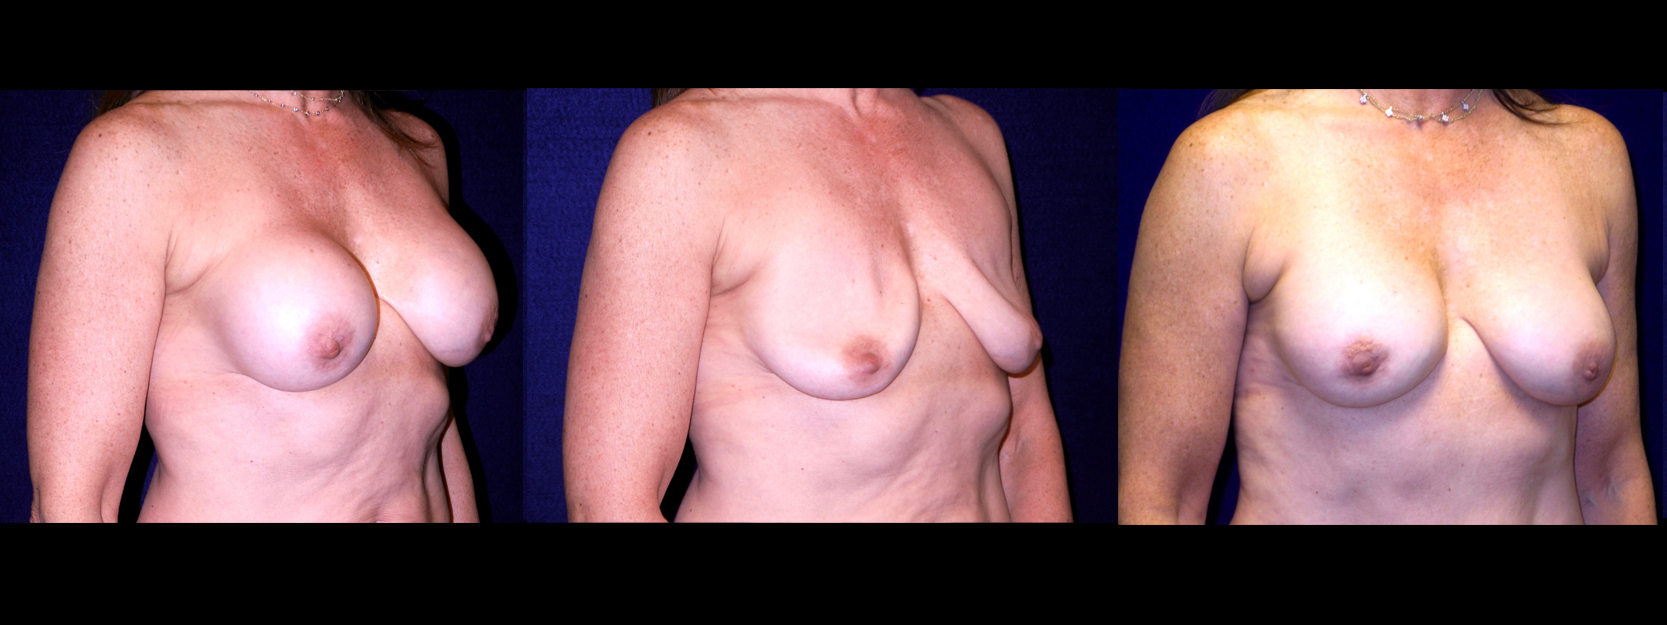 Right 3/4 View - Implant Revision - Contracted Saline, Deflated, Replaced with Silicone Implants